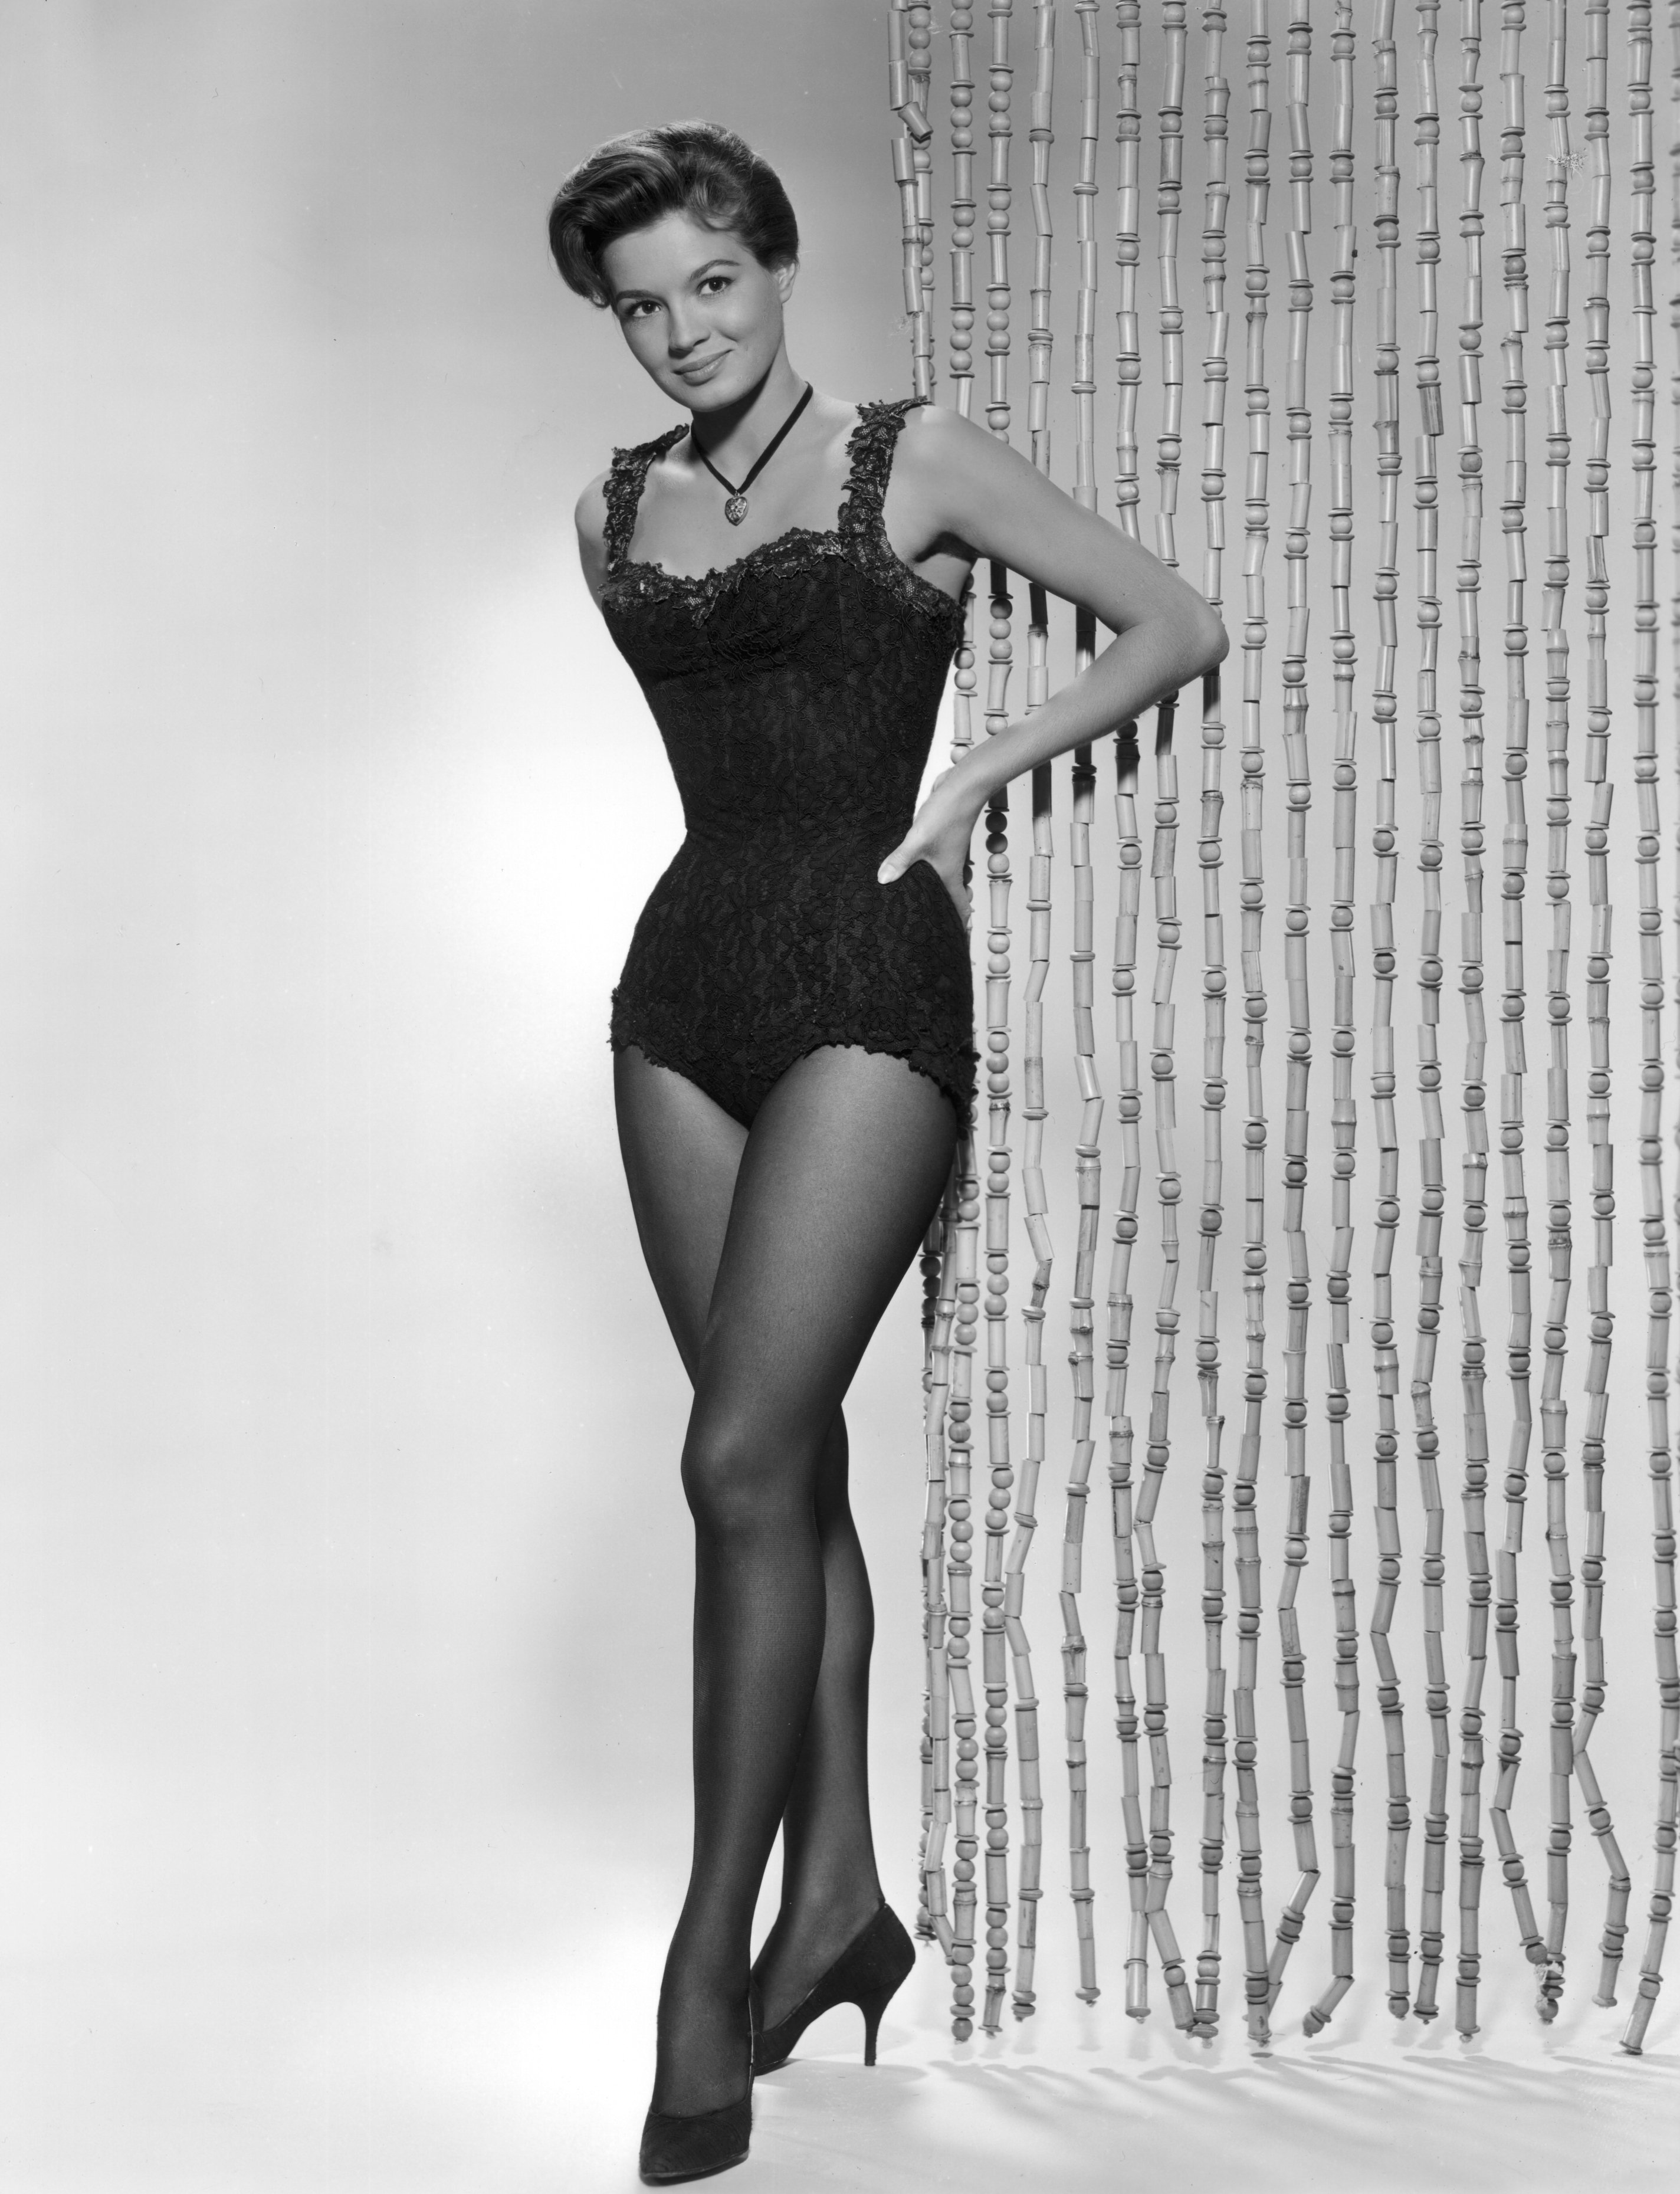 Angie Dickinson, actress, in her younger days | Photo: Getty Images